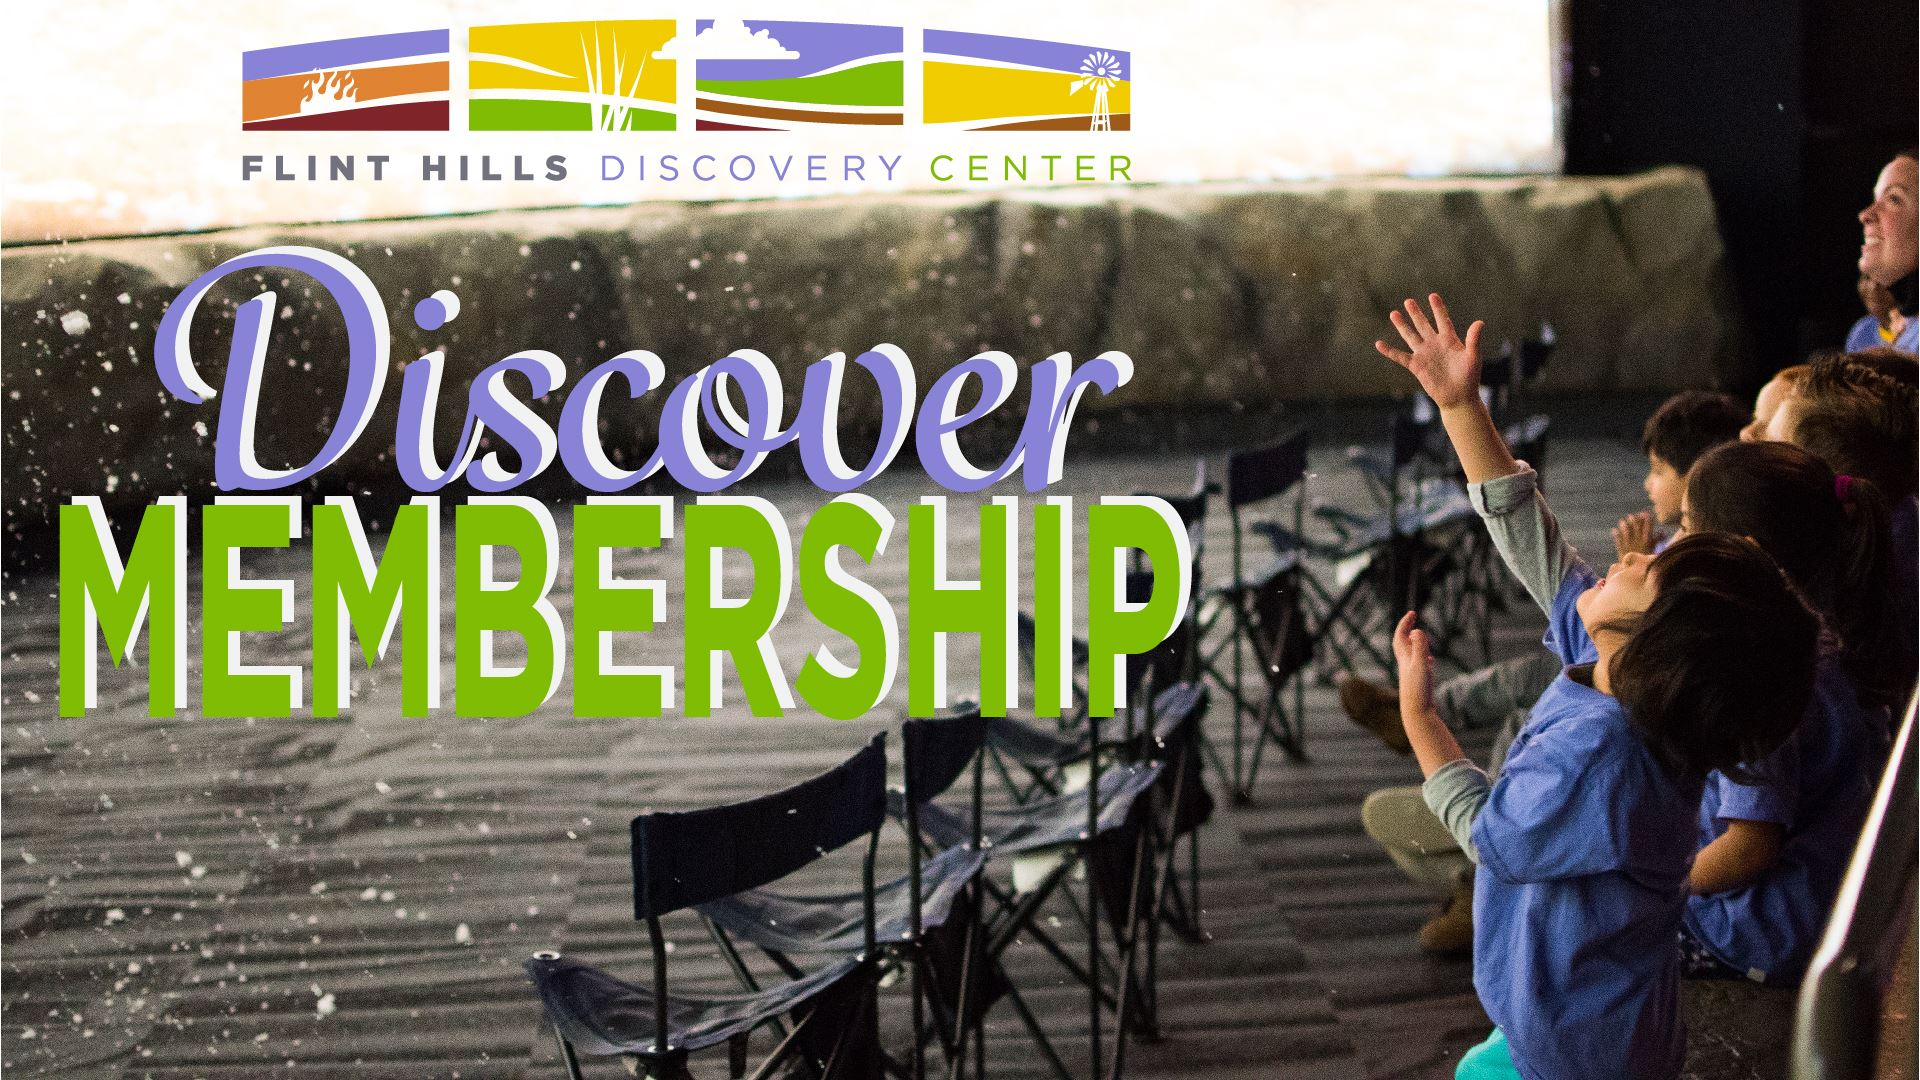 Discover Membership at the Flint Hills Discovery Center